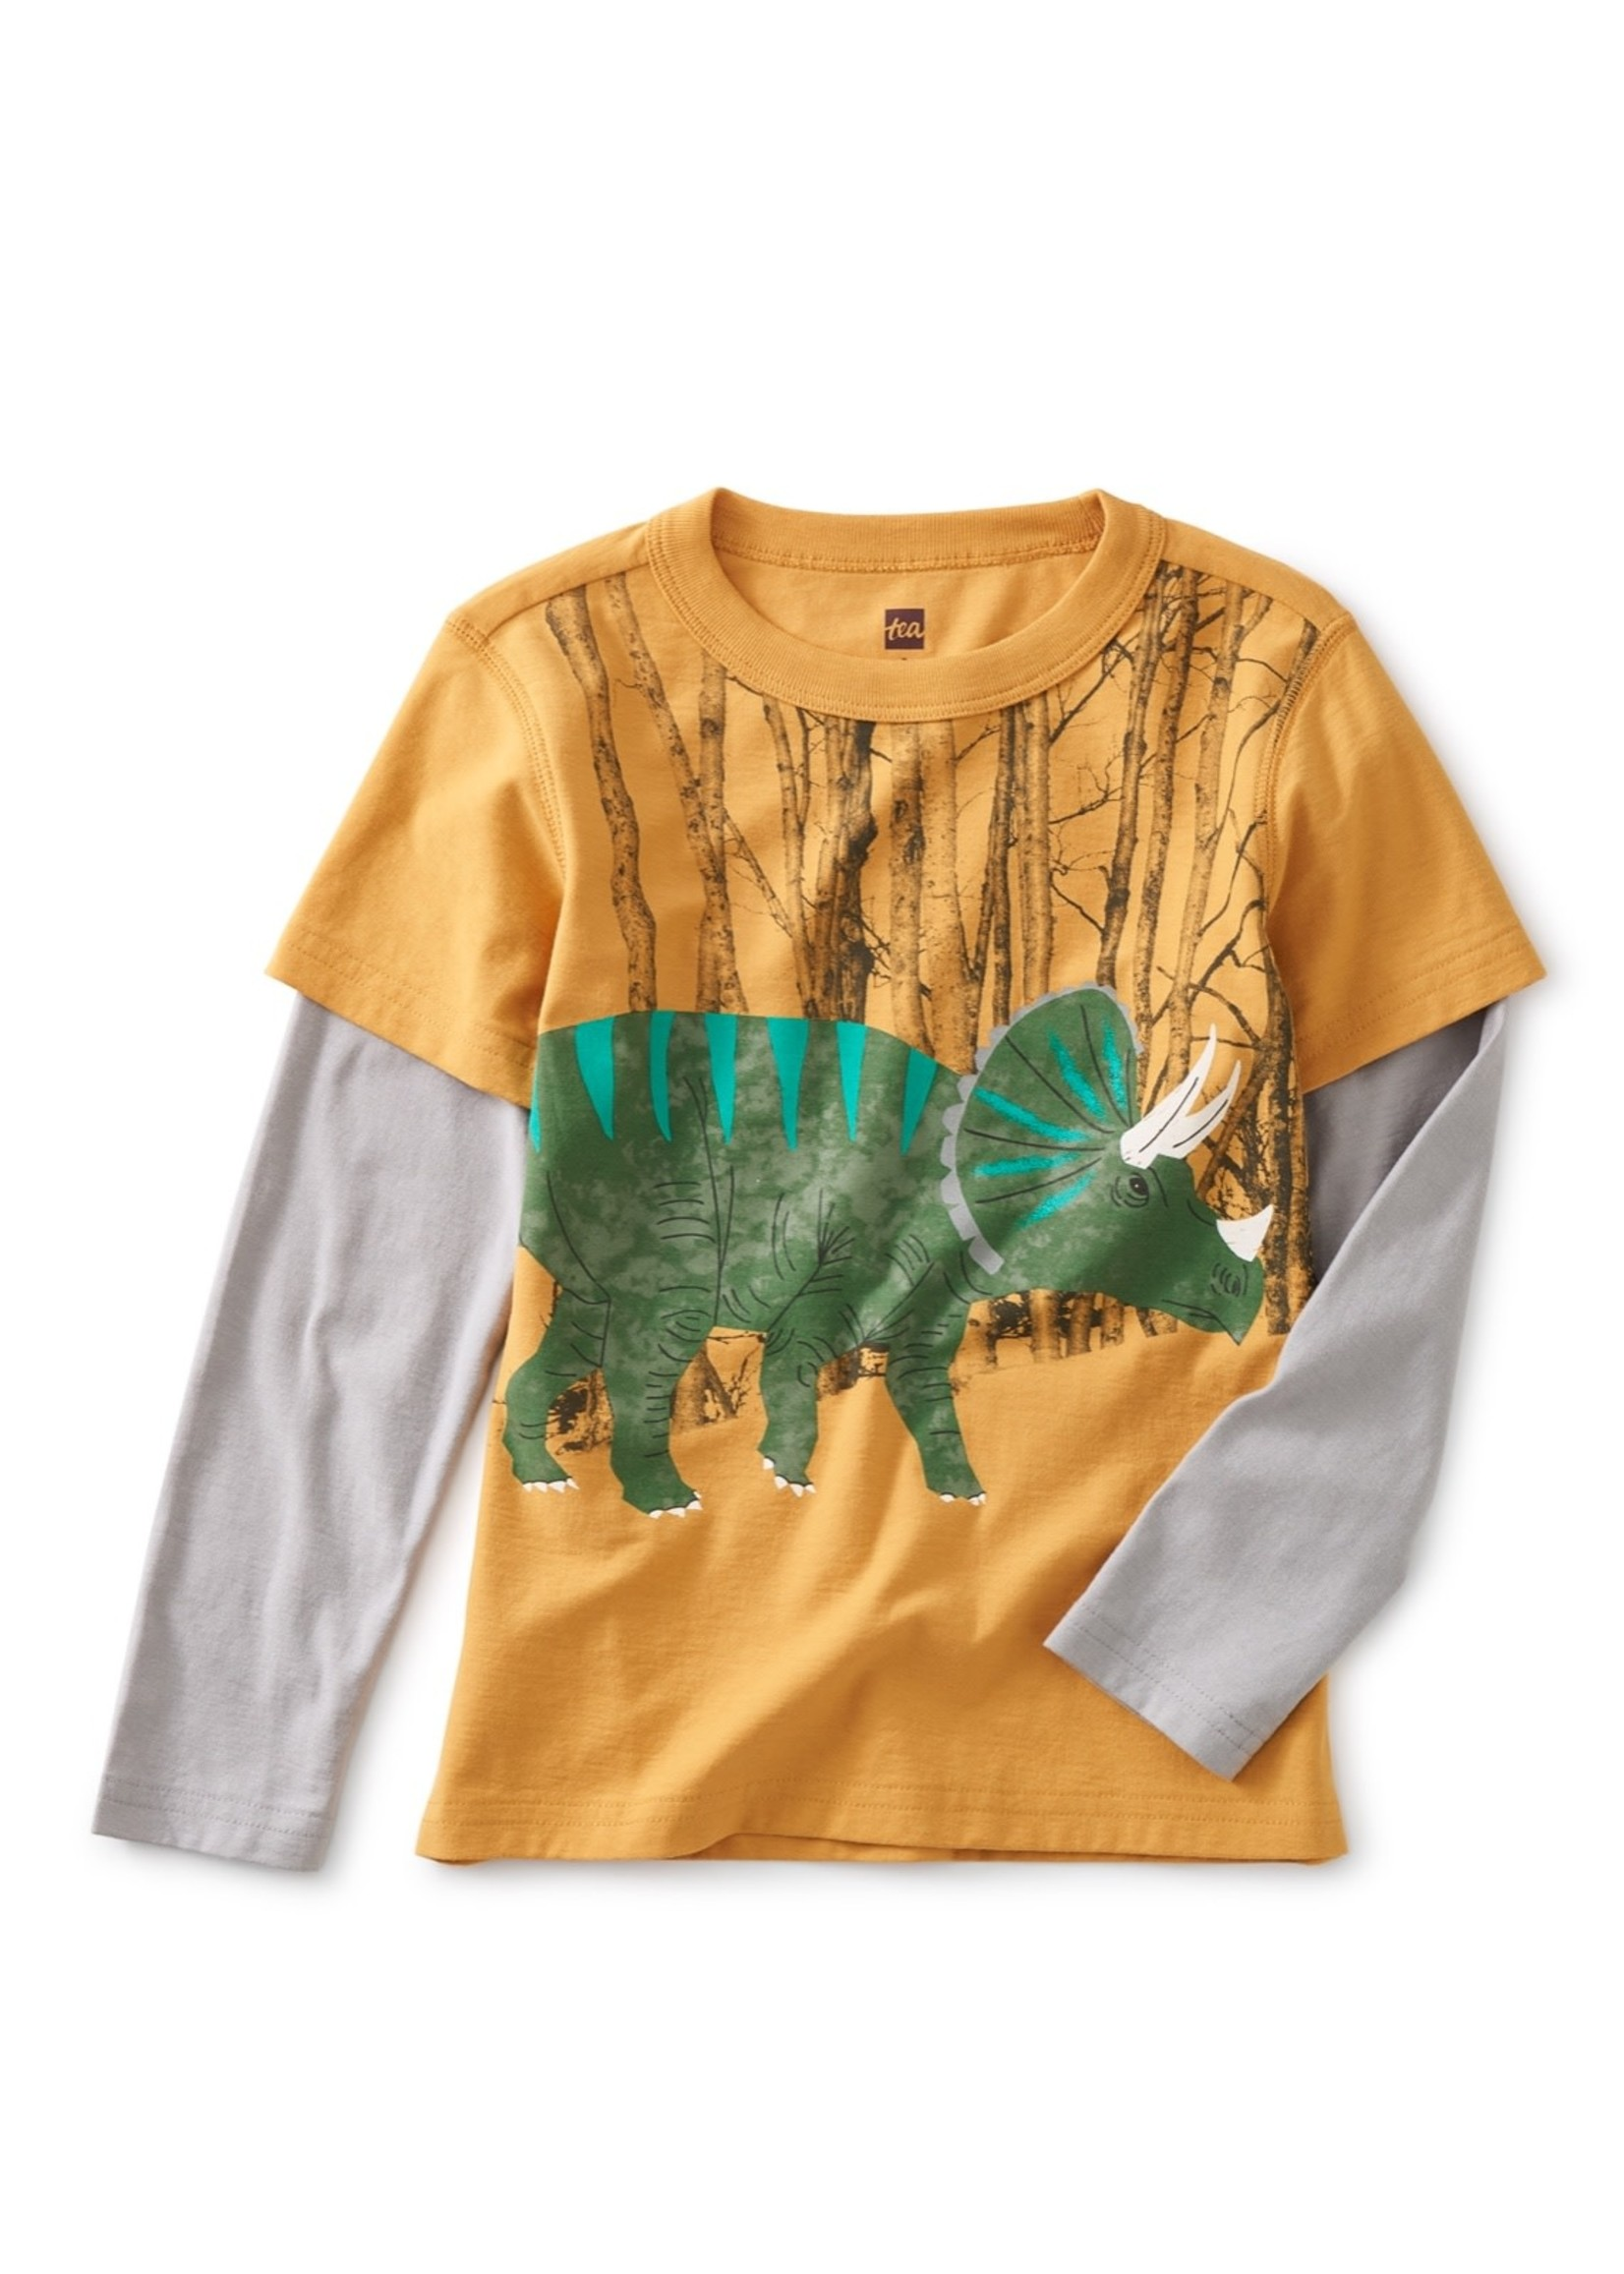 Tea Collection Tea Collection, Triceratop Layered Graphic Tee In Peanut